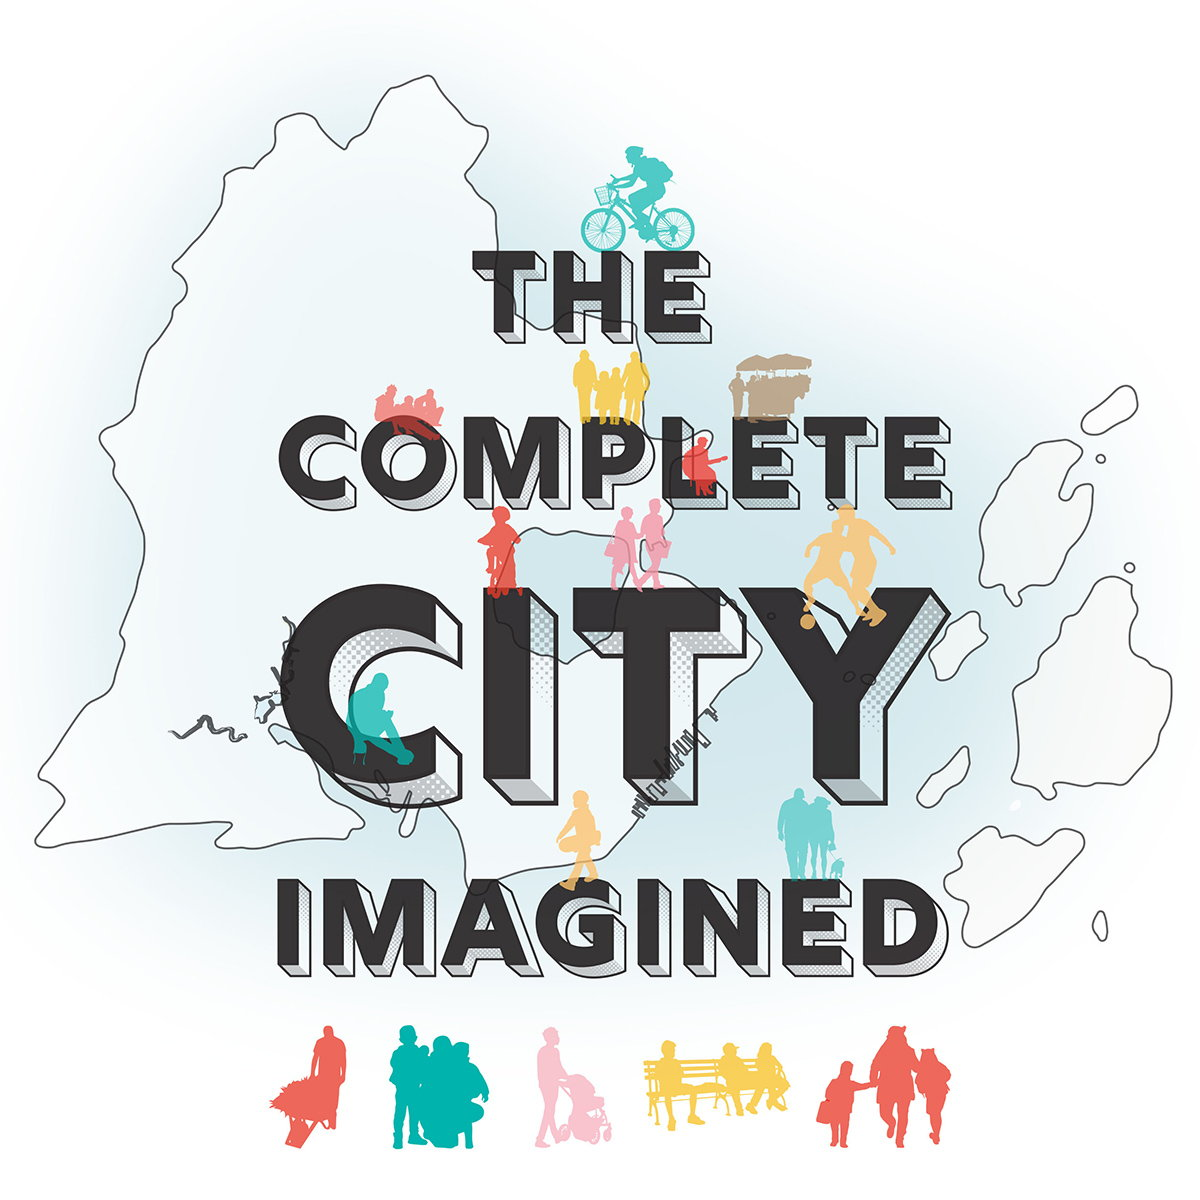 The Complete City - Imagined